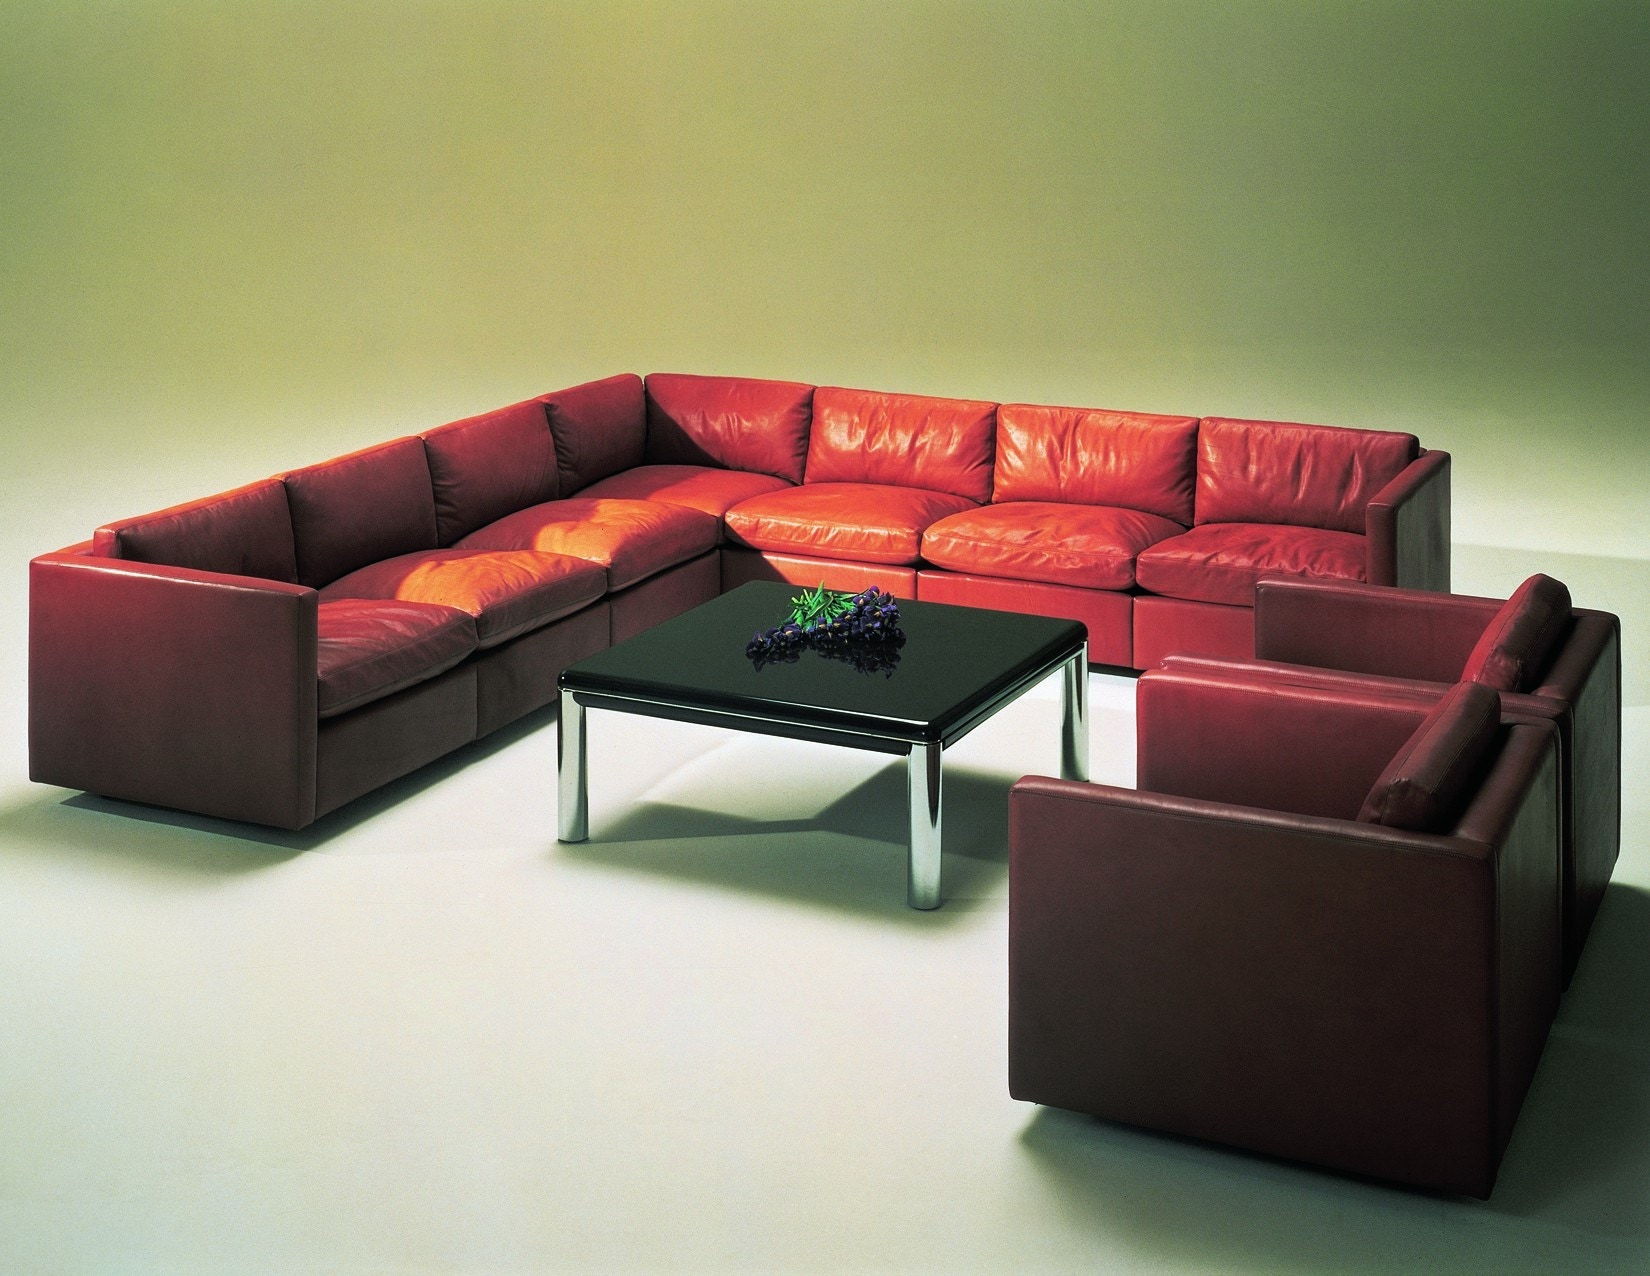 Knoll Pfister Sofa Charles Pfister Sofa By Knoll In Leather And Fabric For At Thesofa